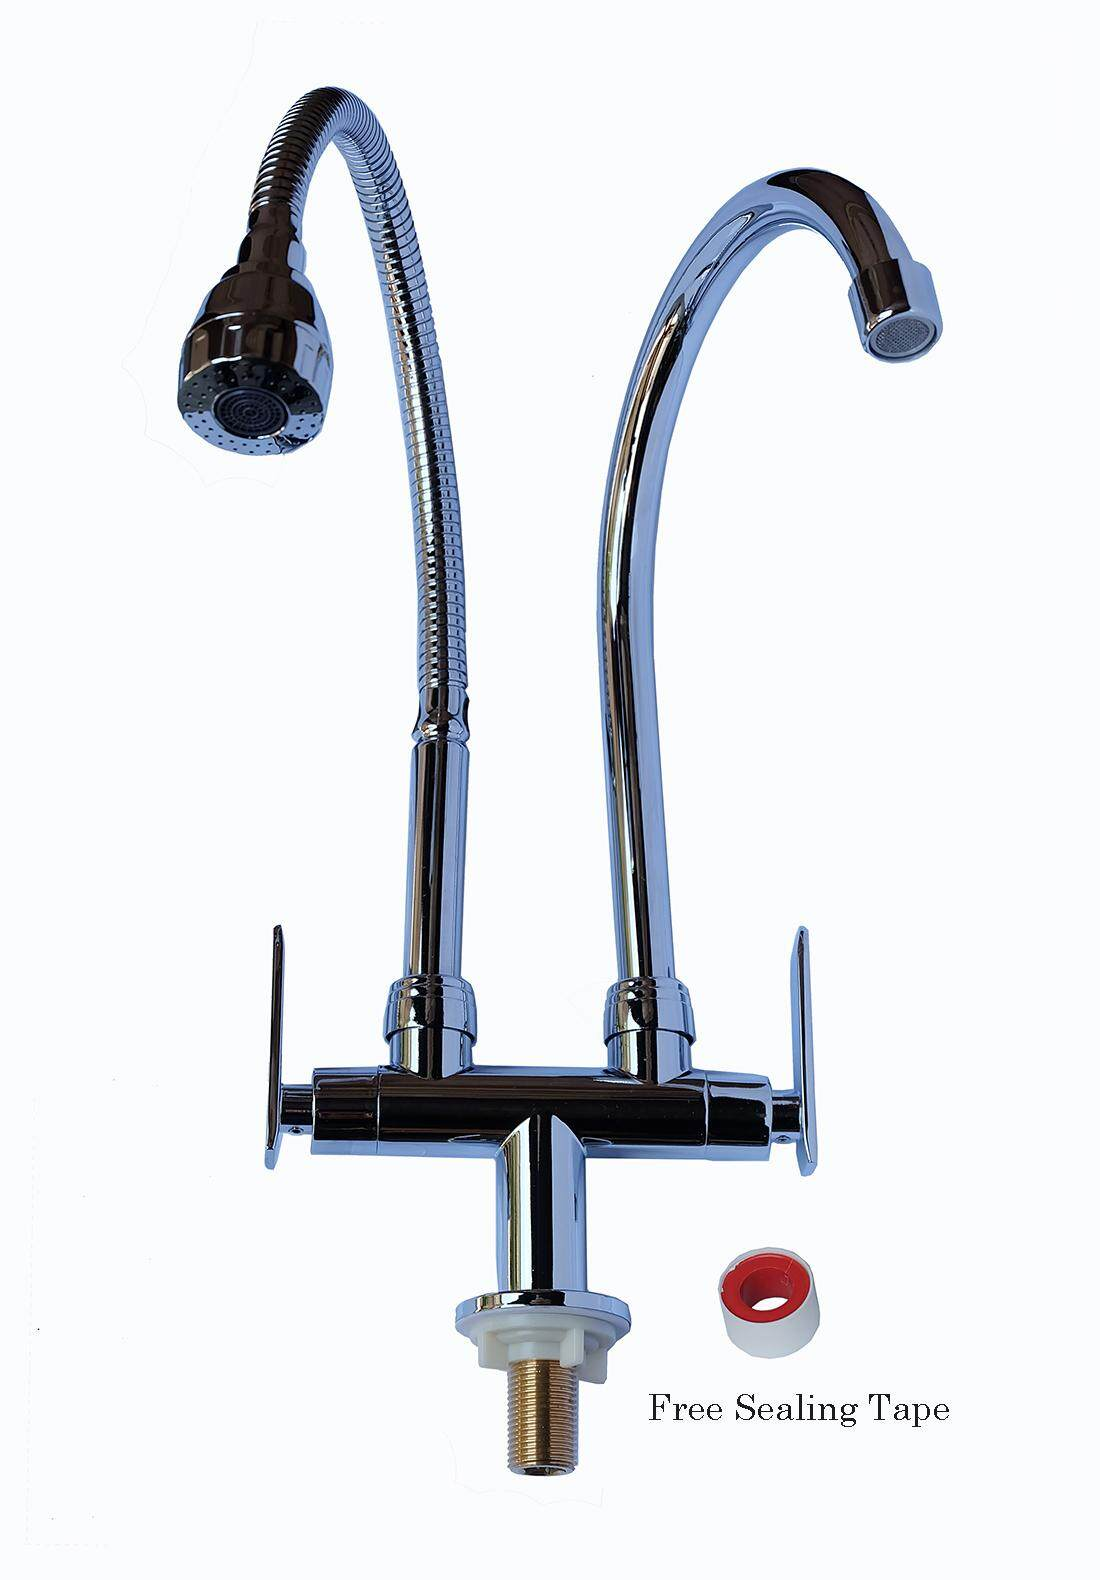 Luccano Lu8901 Double Faucet with Flexible Shaft and Water Tap for Kitchen Basin